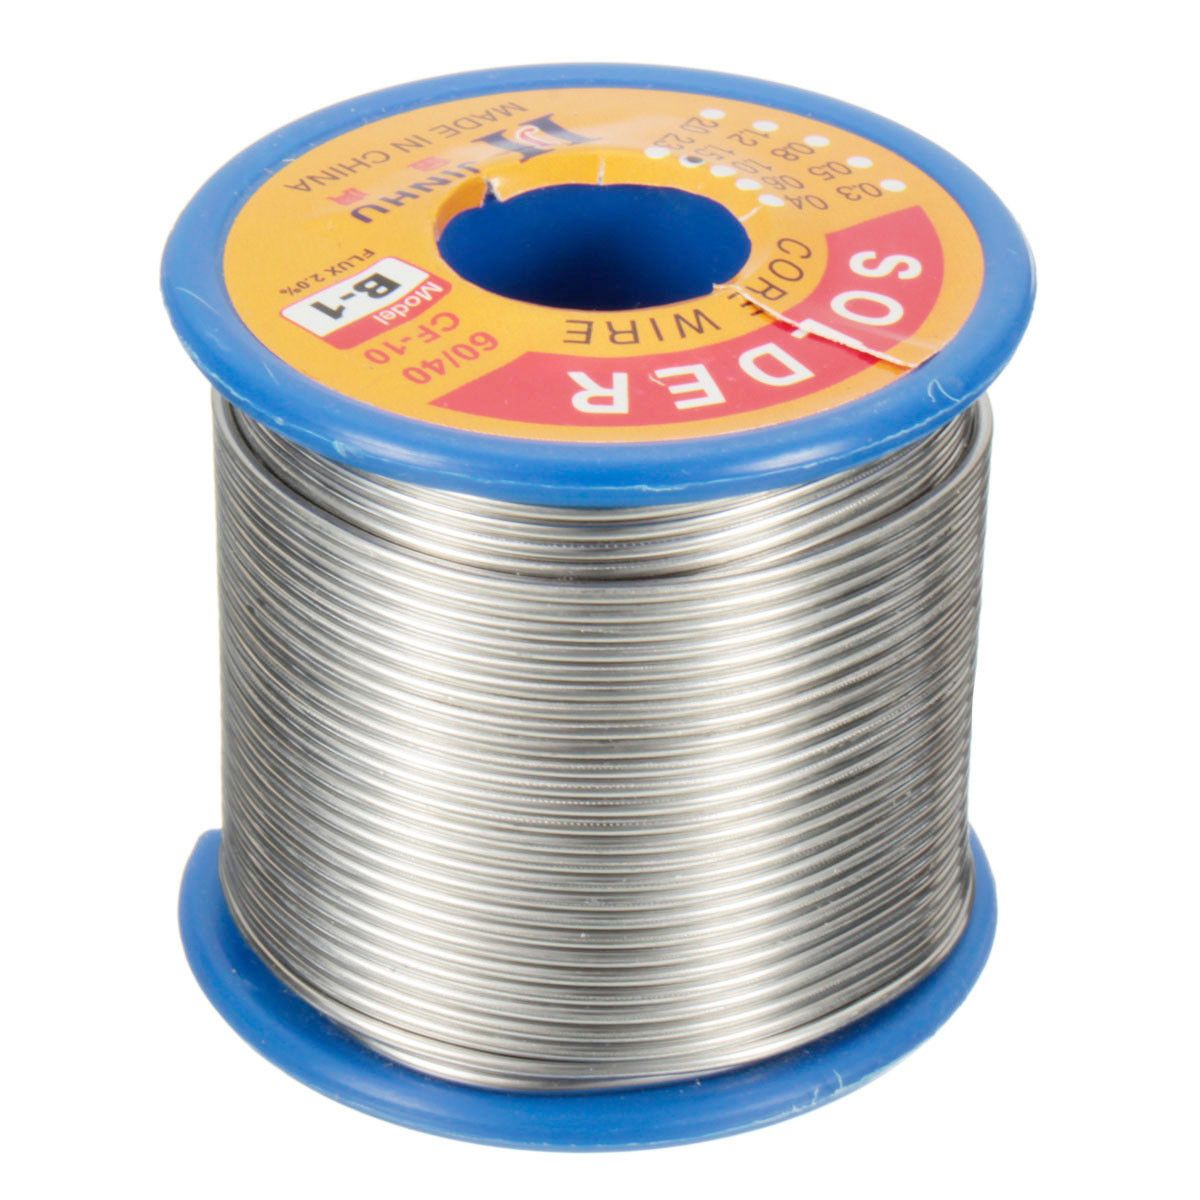 500g 1.5mm Flux 2.0% Solder Wire Lead 60/40 HQ Flux Multicolored ...